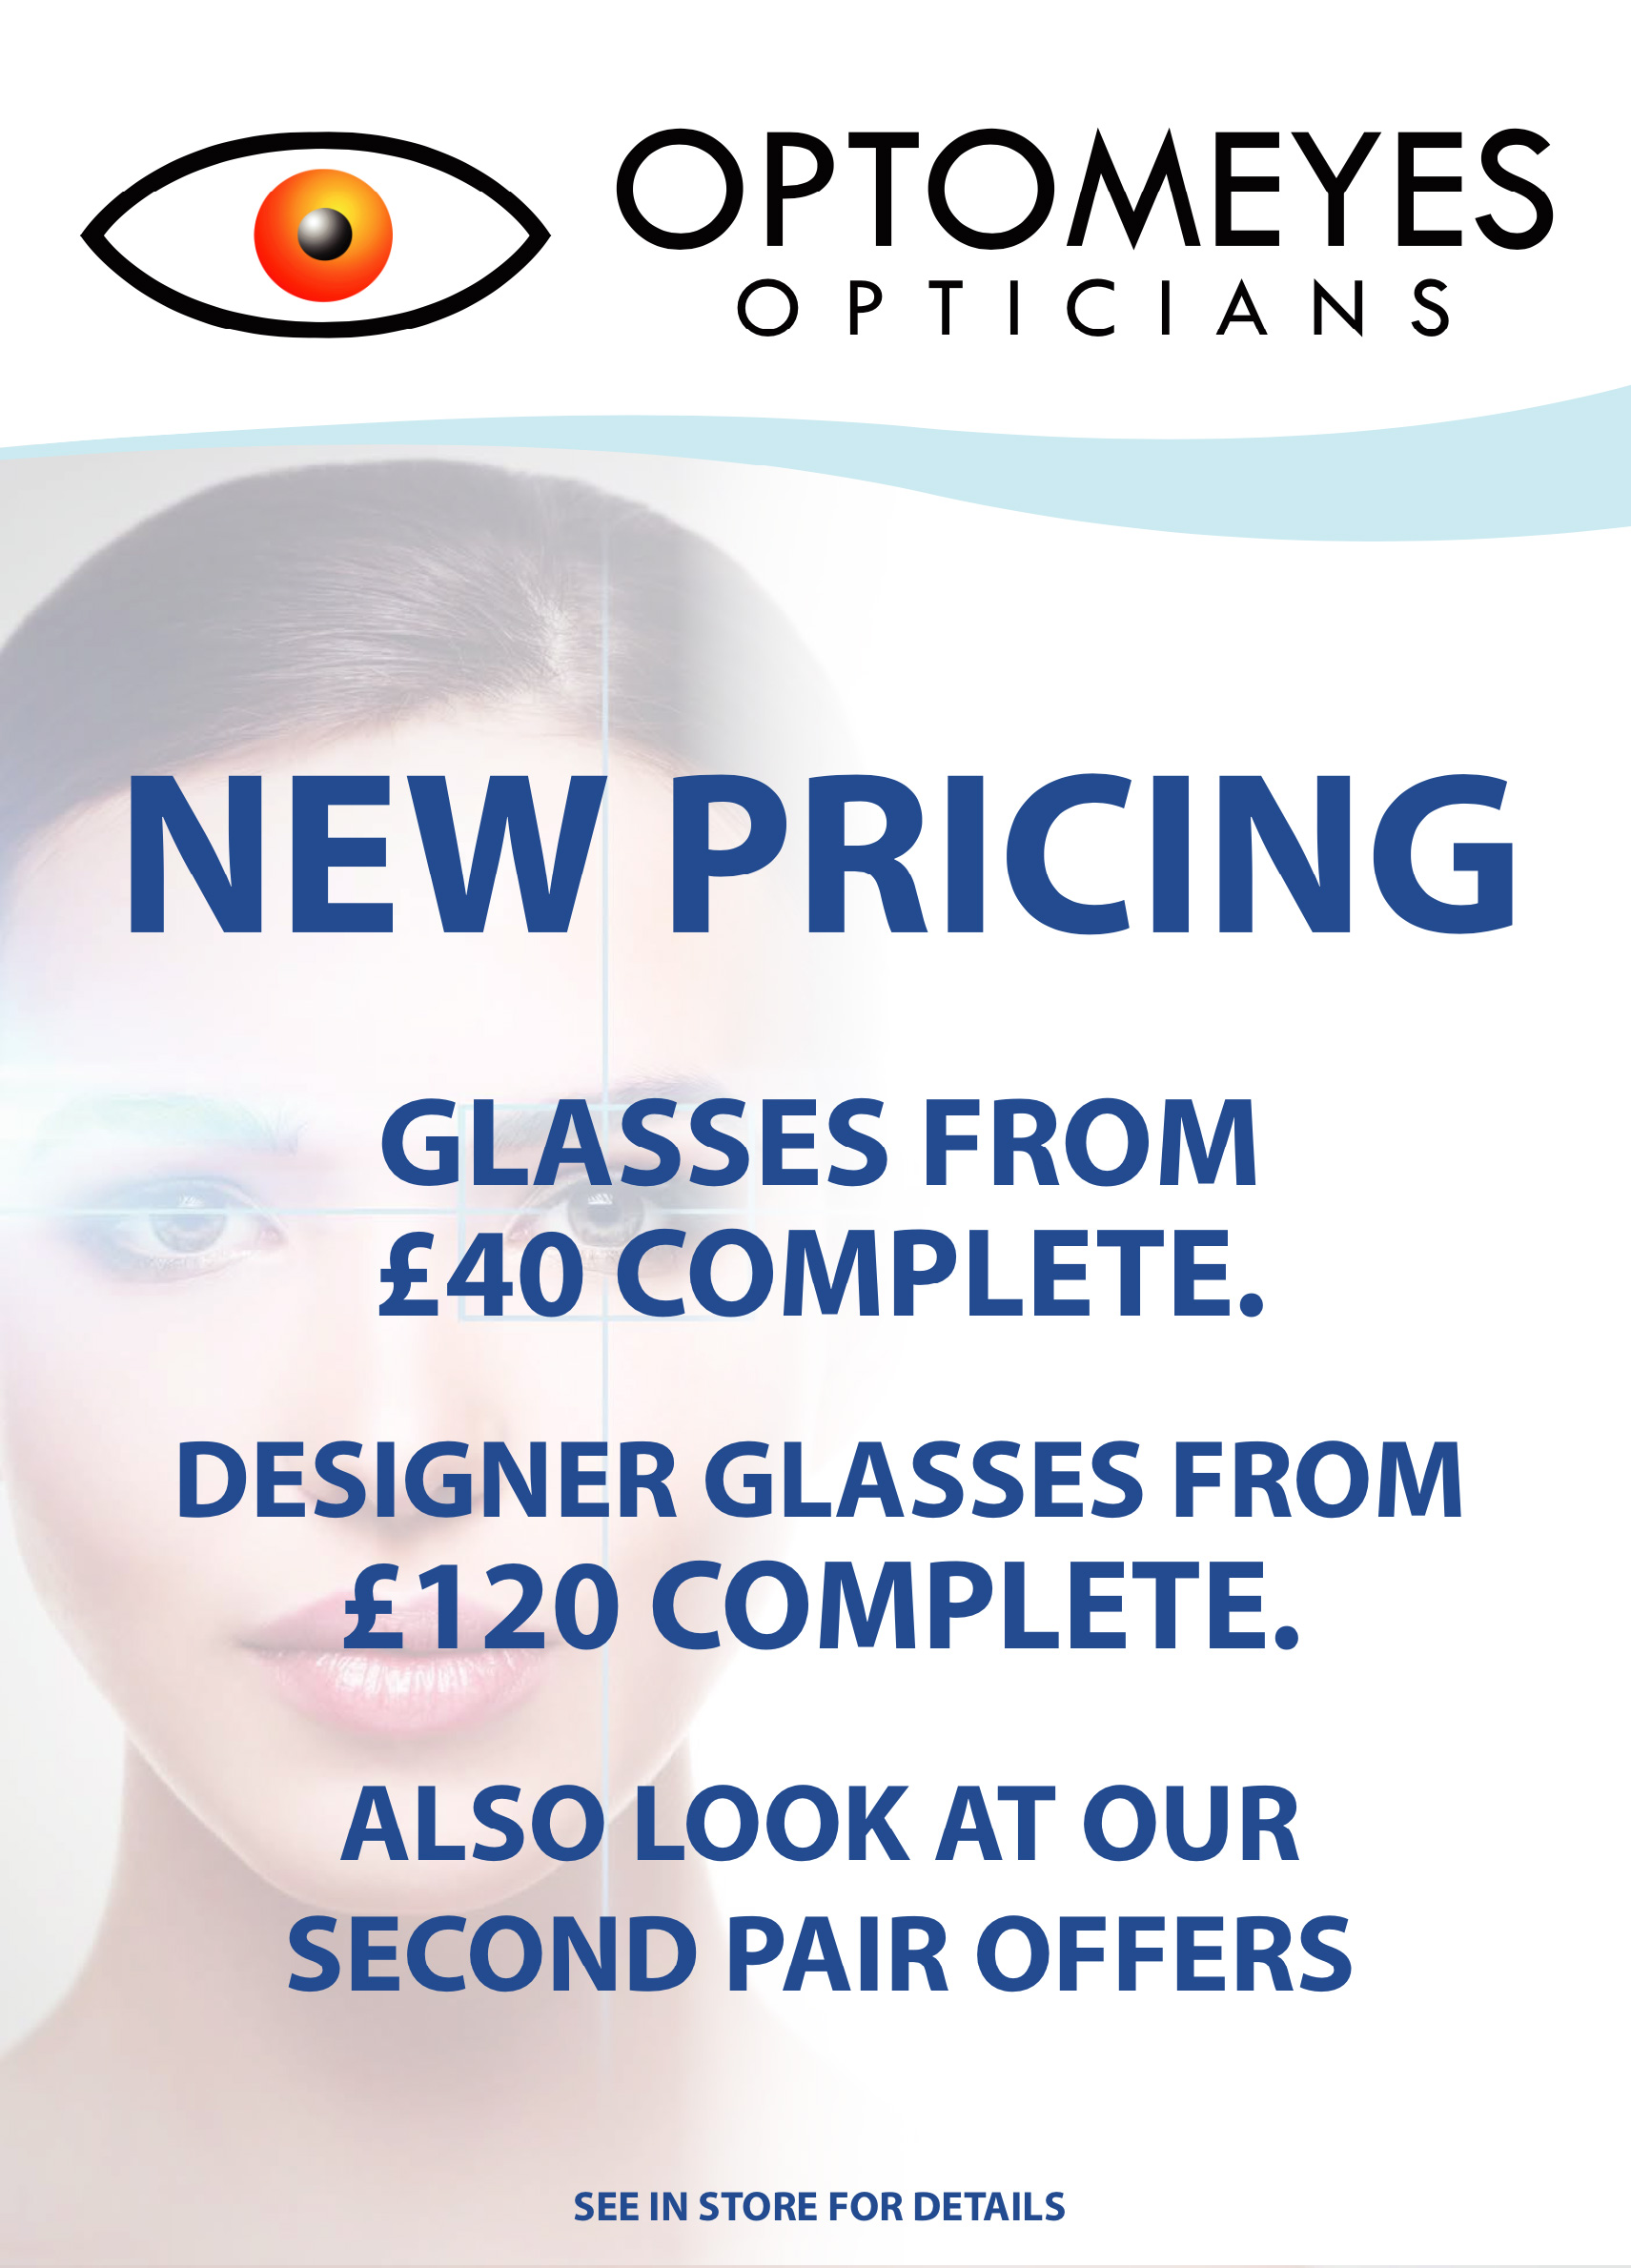 Optomeyes new pricing August 2019